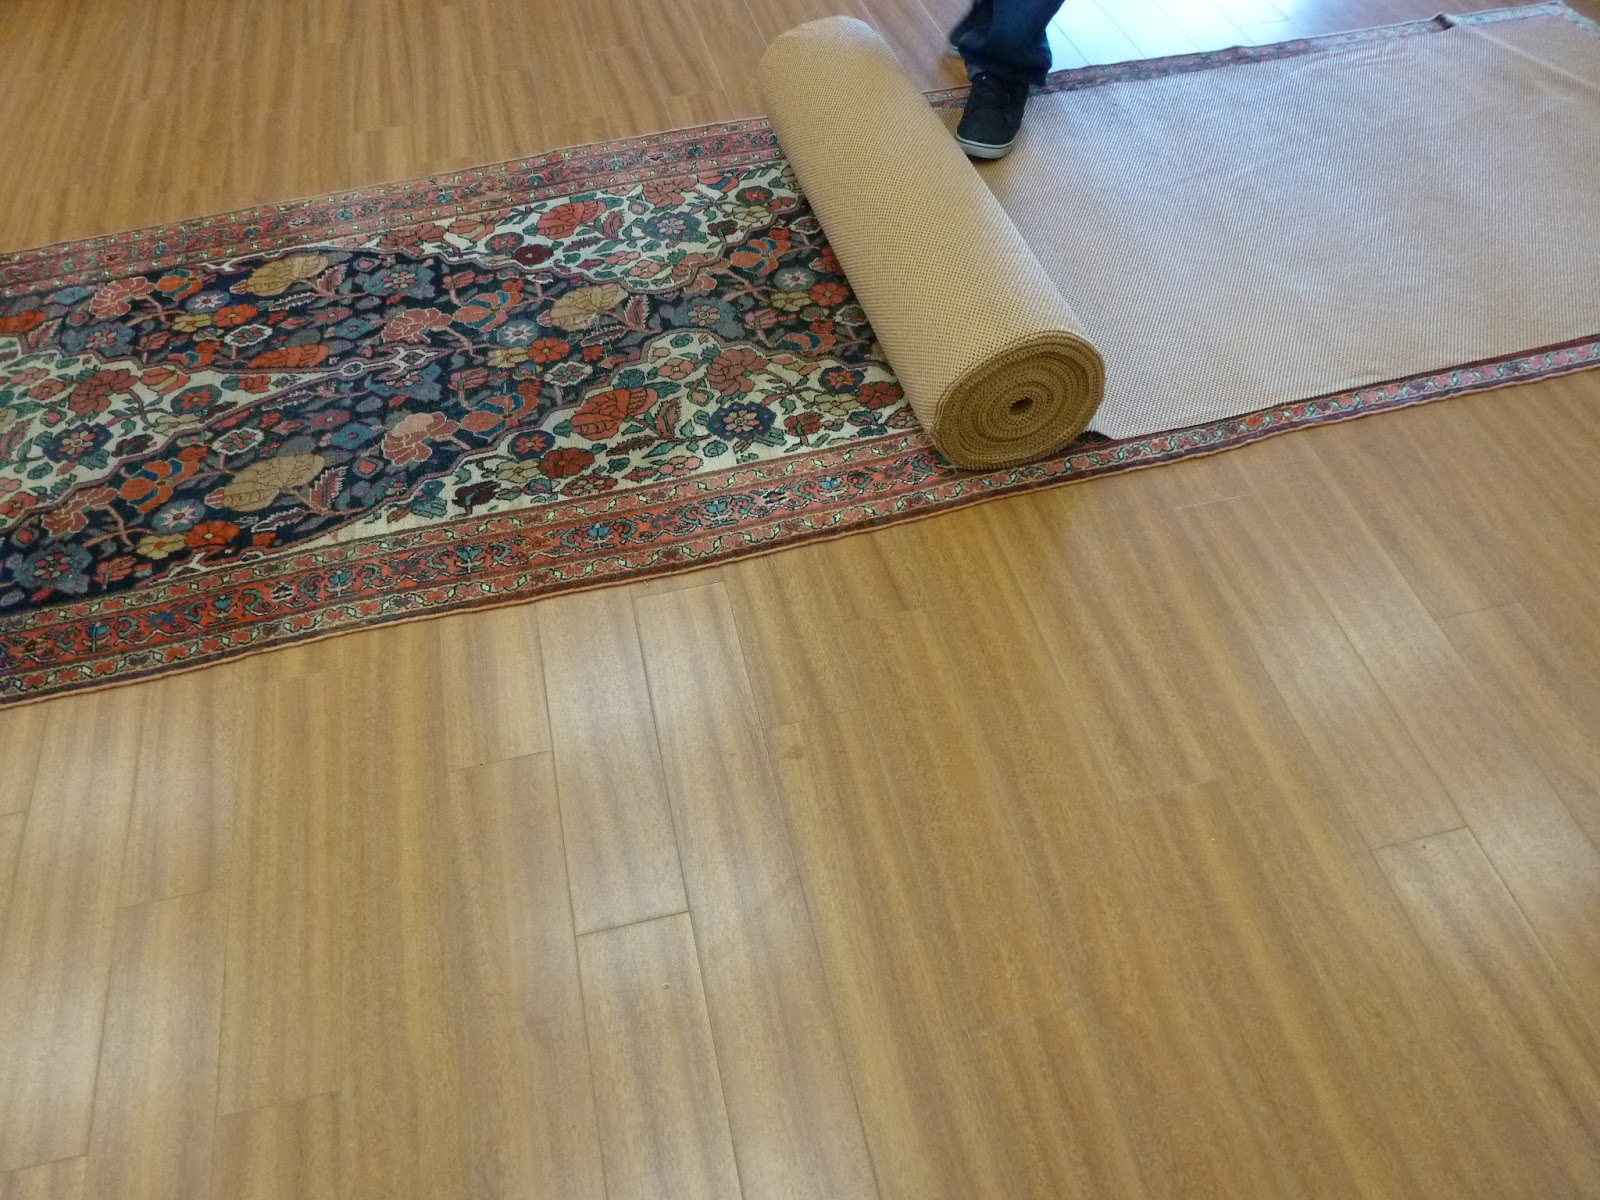 Our Top Of The Line Rug Pads Extend Life Your And Protect Floors By Providing More Air Circulation Working With Vacuum Cleaner To